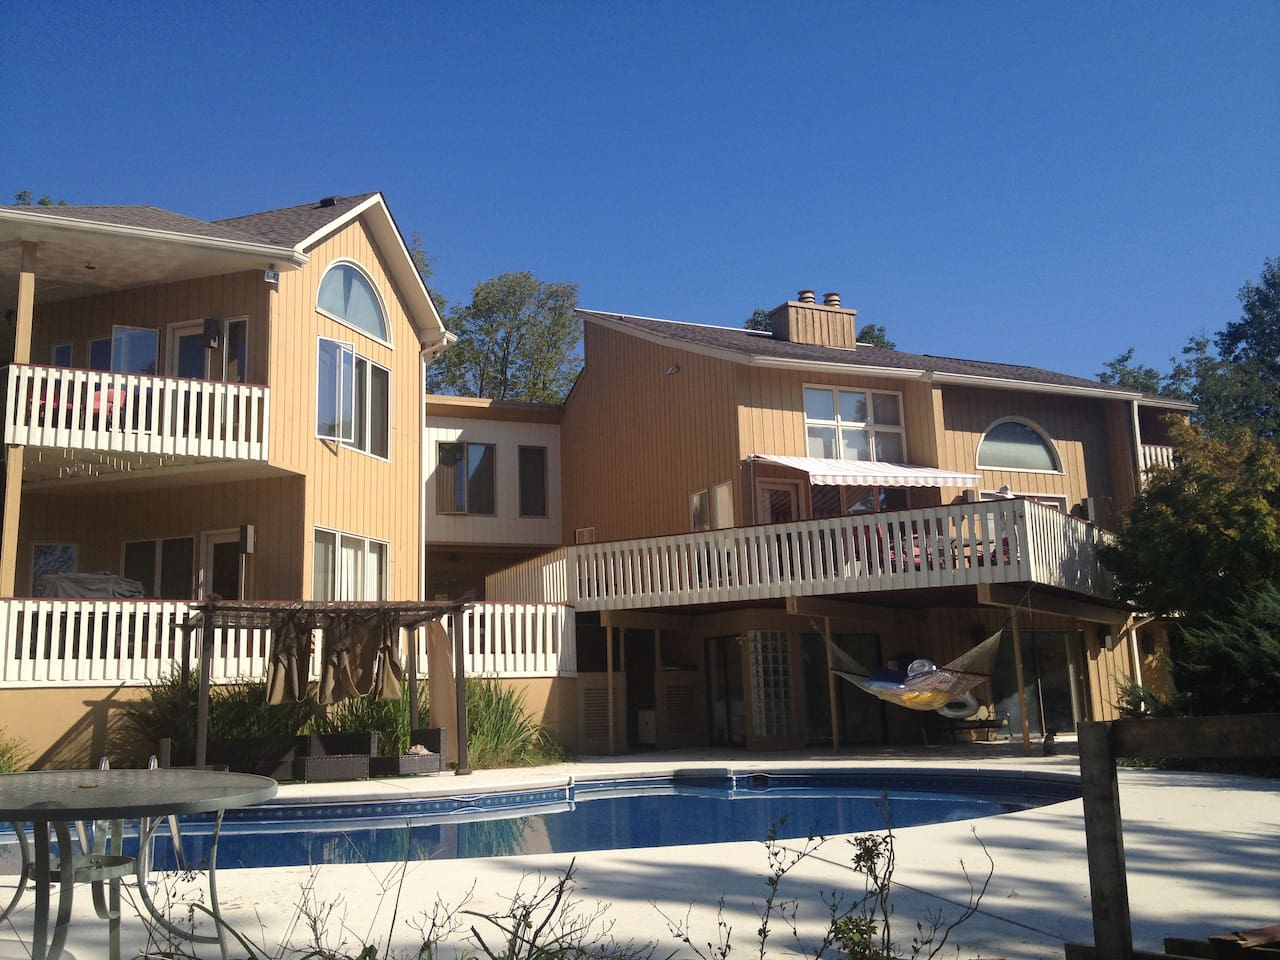 Exterior over pool